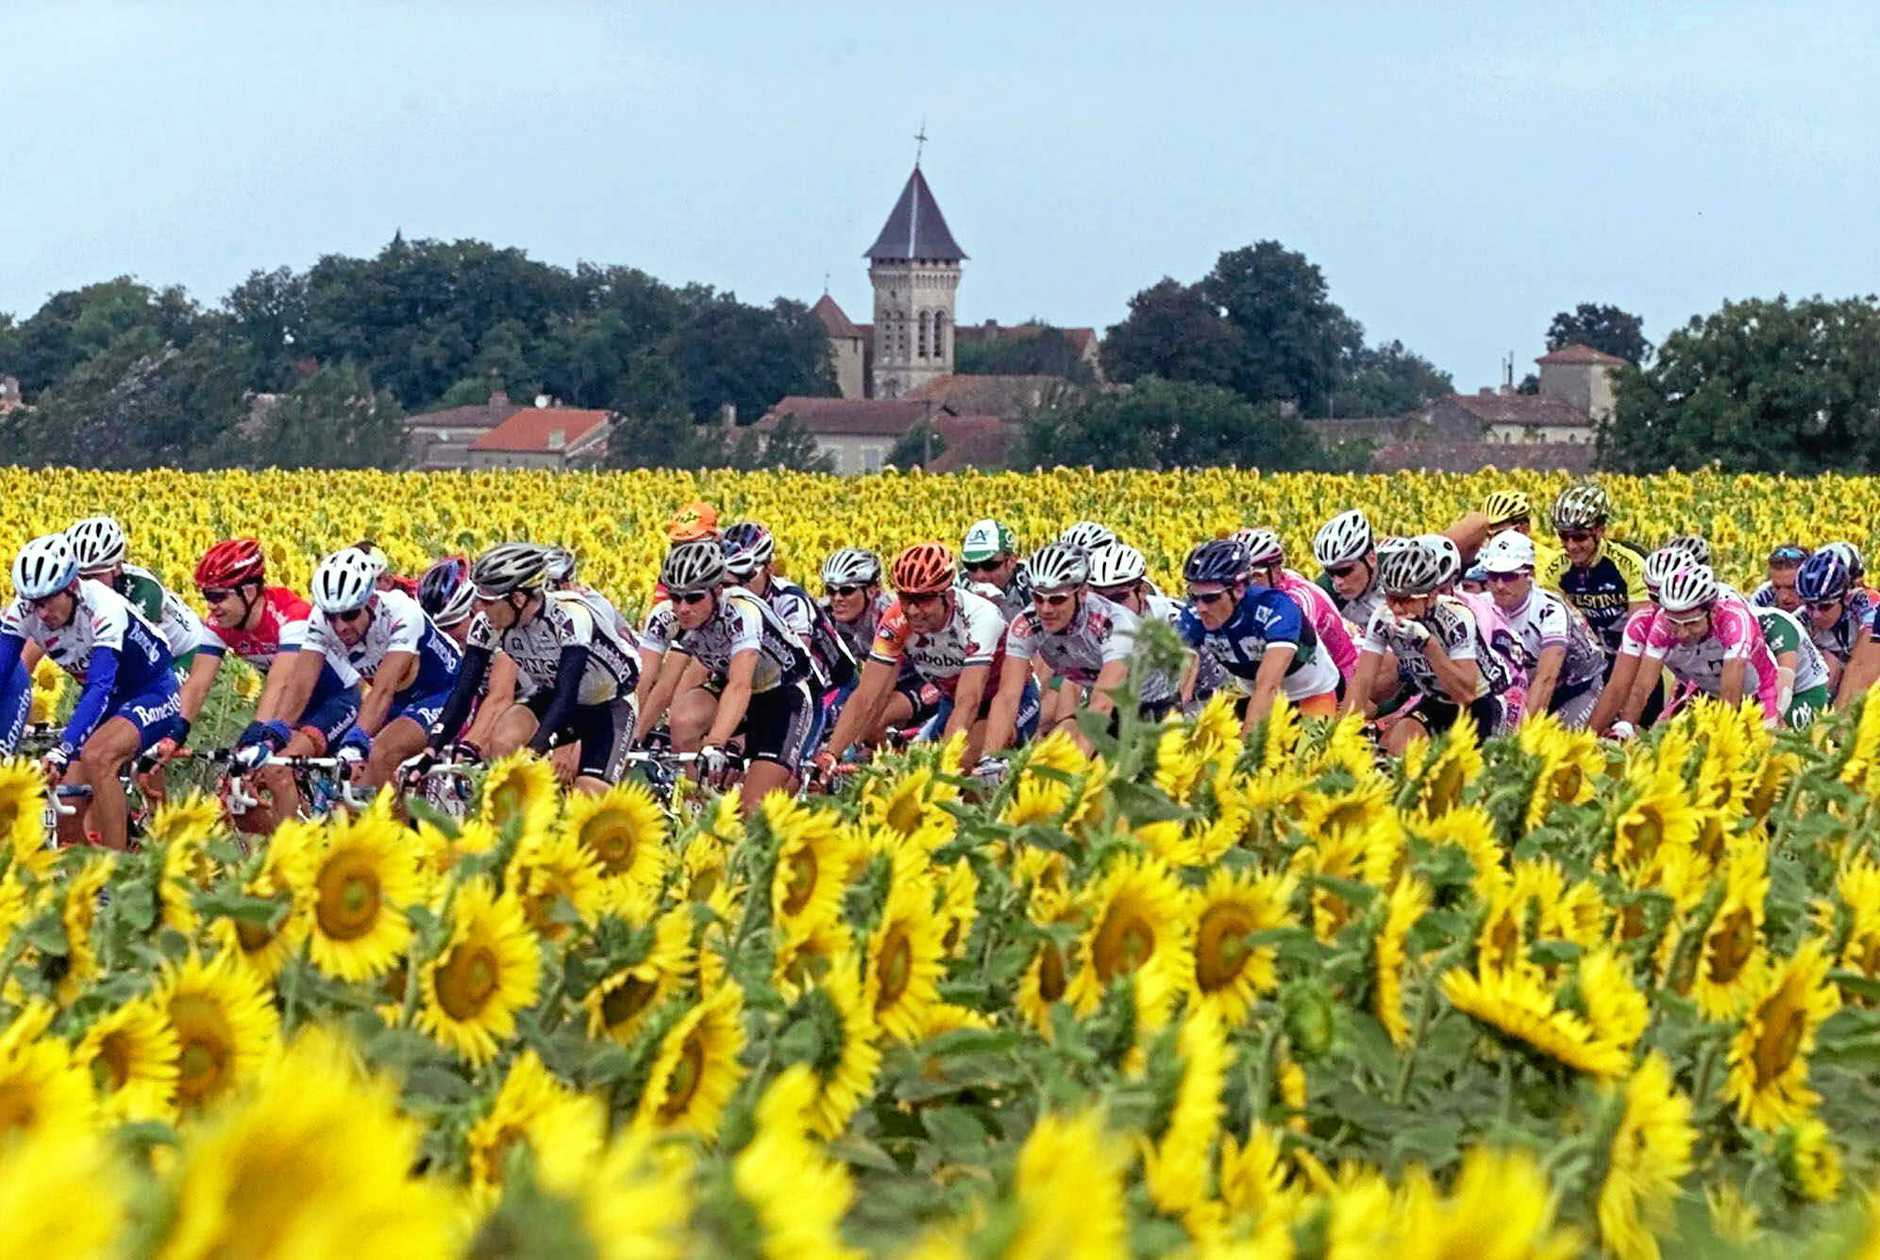 FAMED RACE: The Tour de France pack rides through sunflower fields between Agen and Dax, in south-western France.